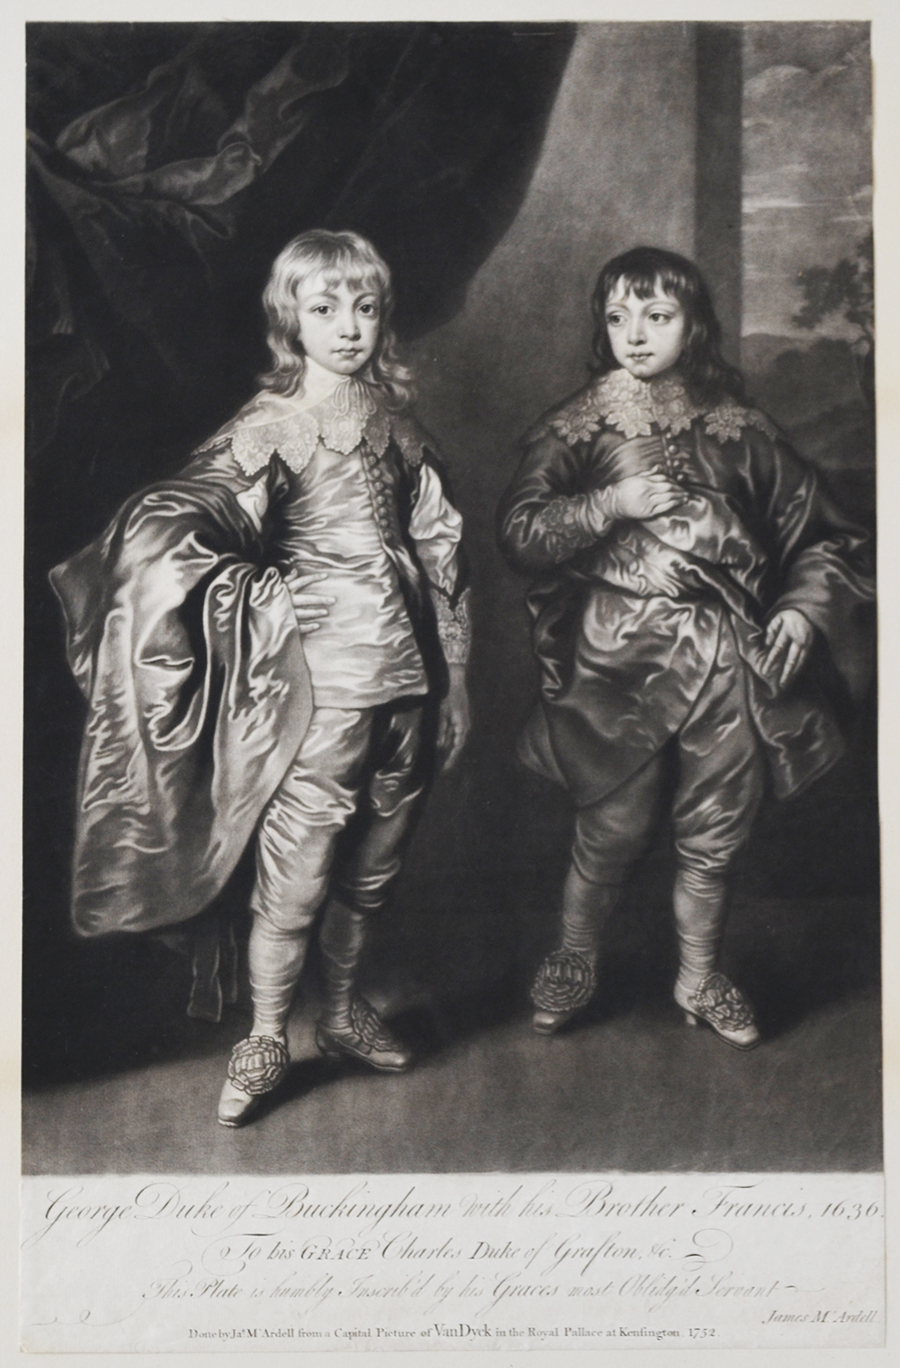 George, Duke of Buckingham, with his brother Francis